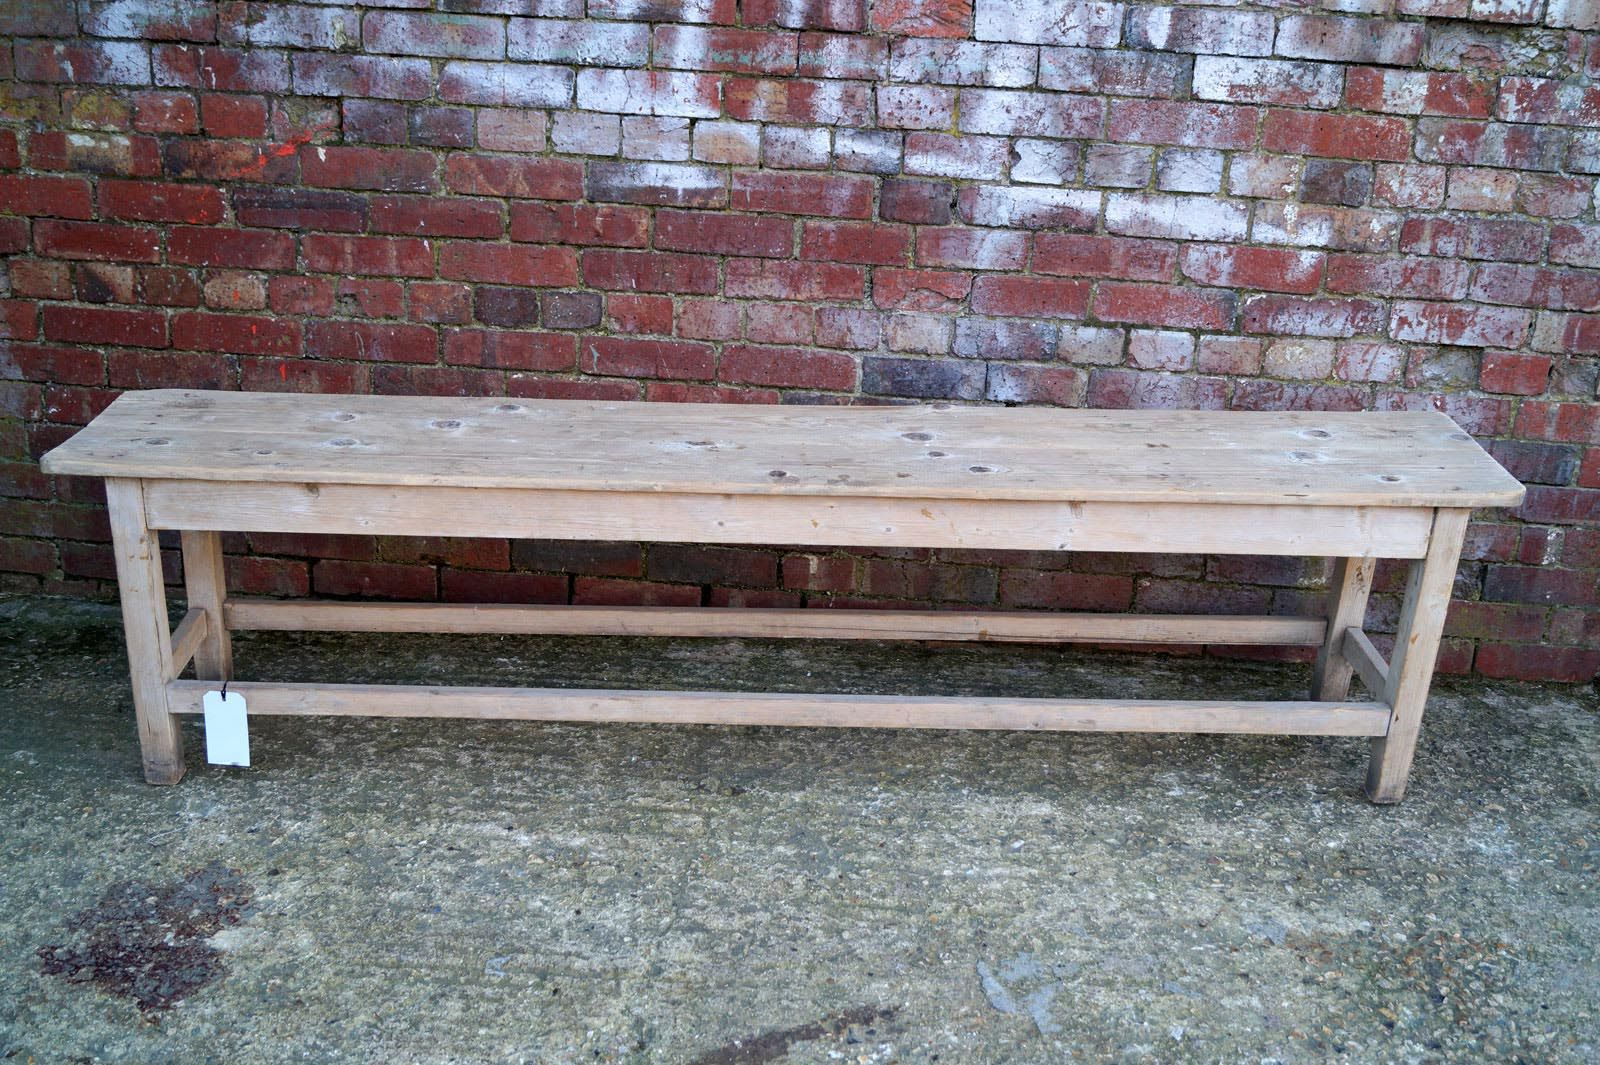 Antique Wooden Bench Antique Wooden Bench78